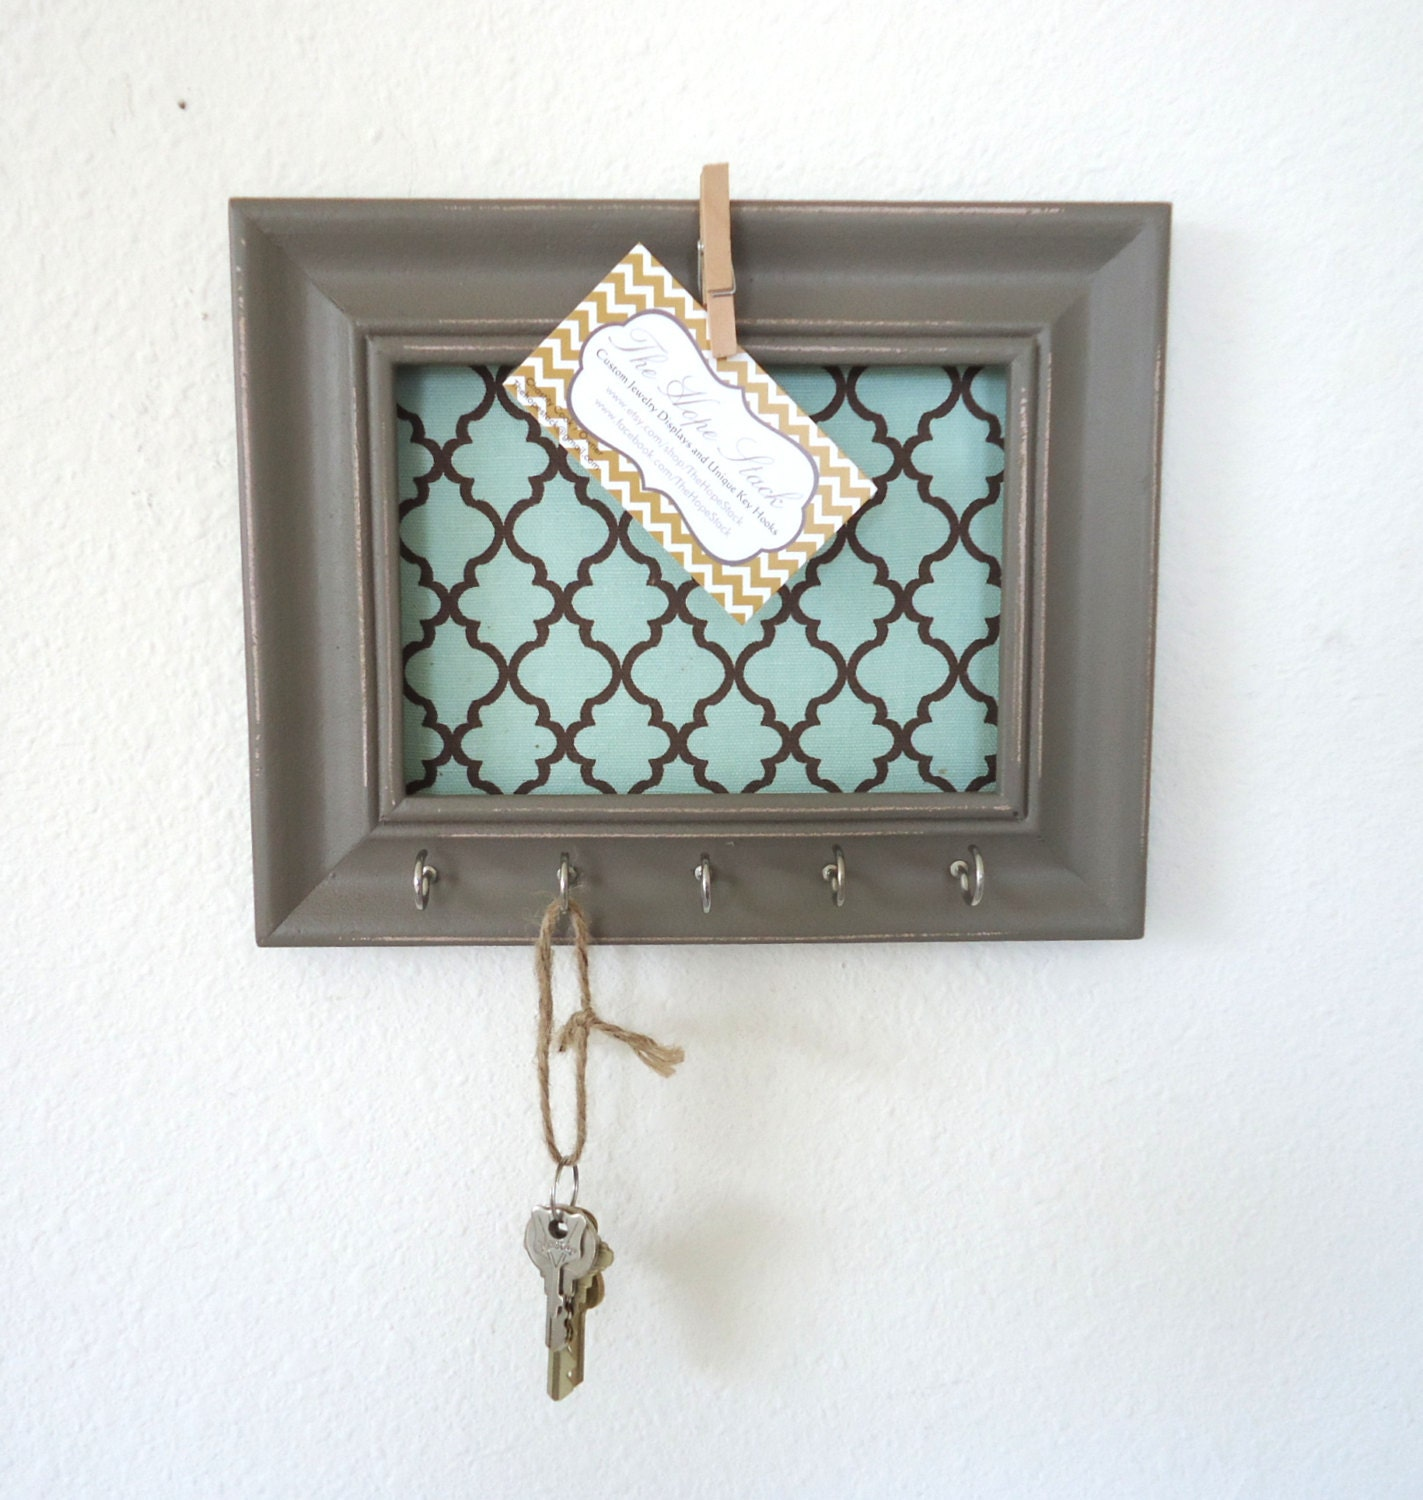 Wall Decor With Key Hooks : Unavailable listing on etsy